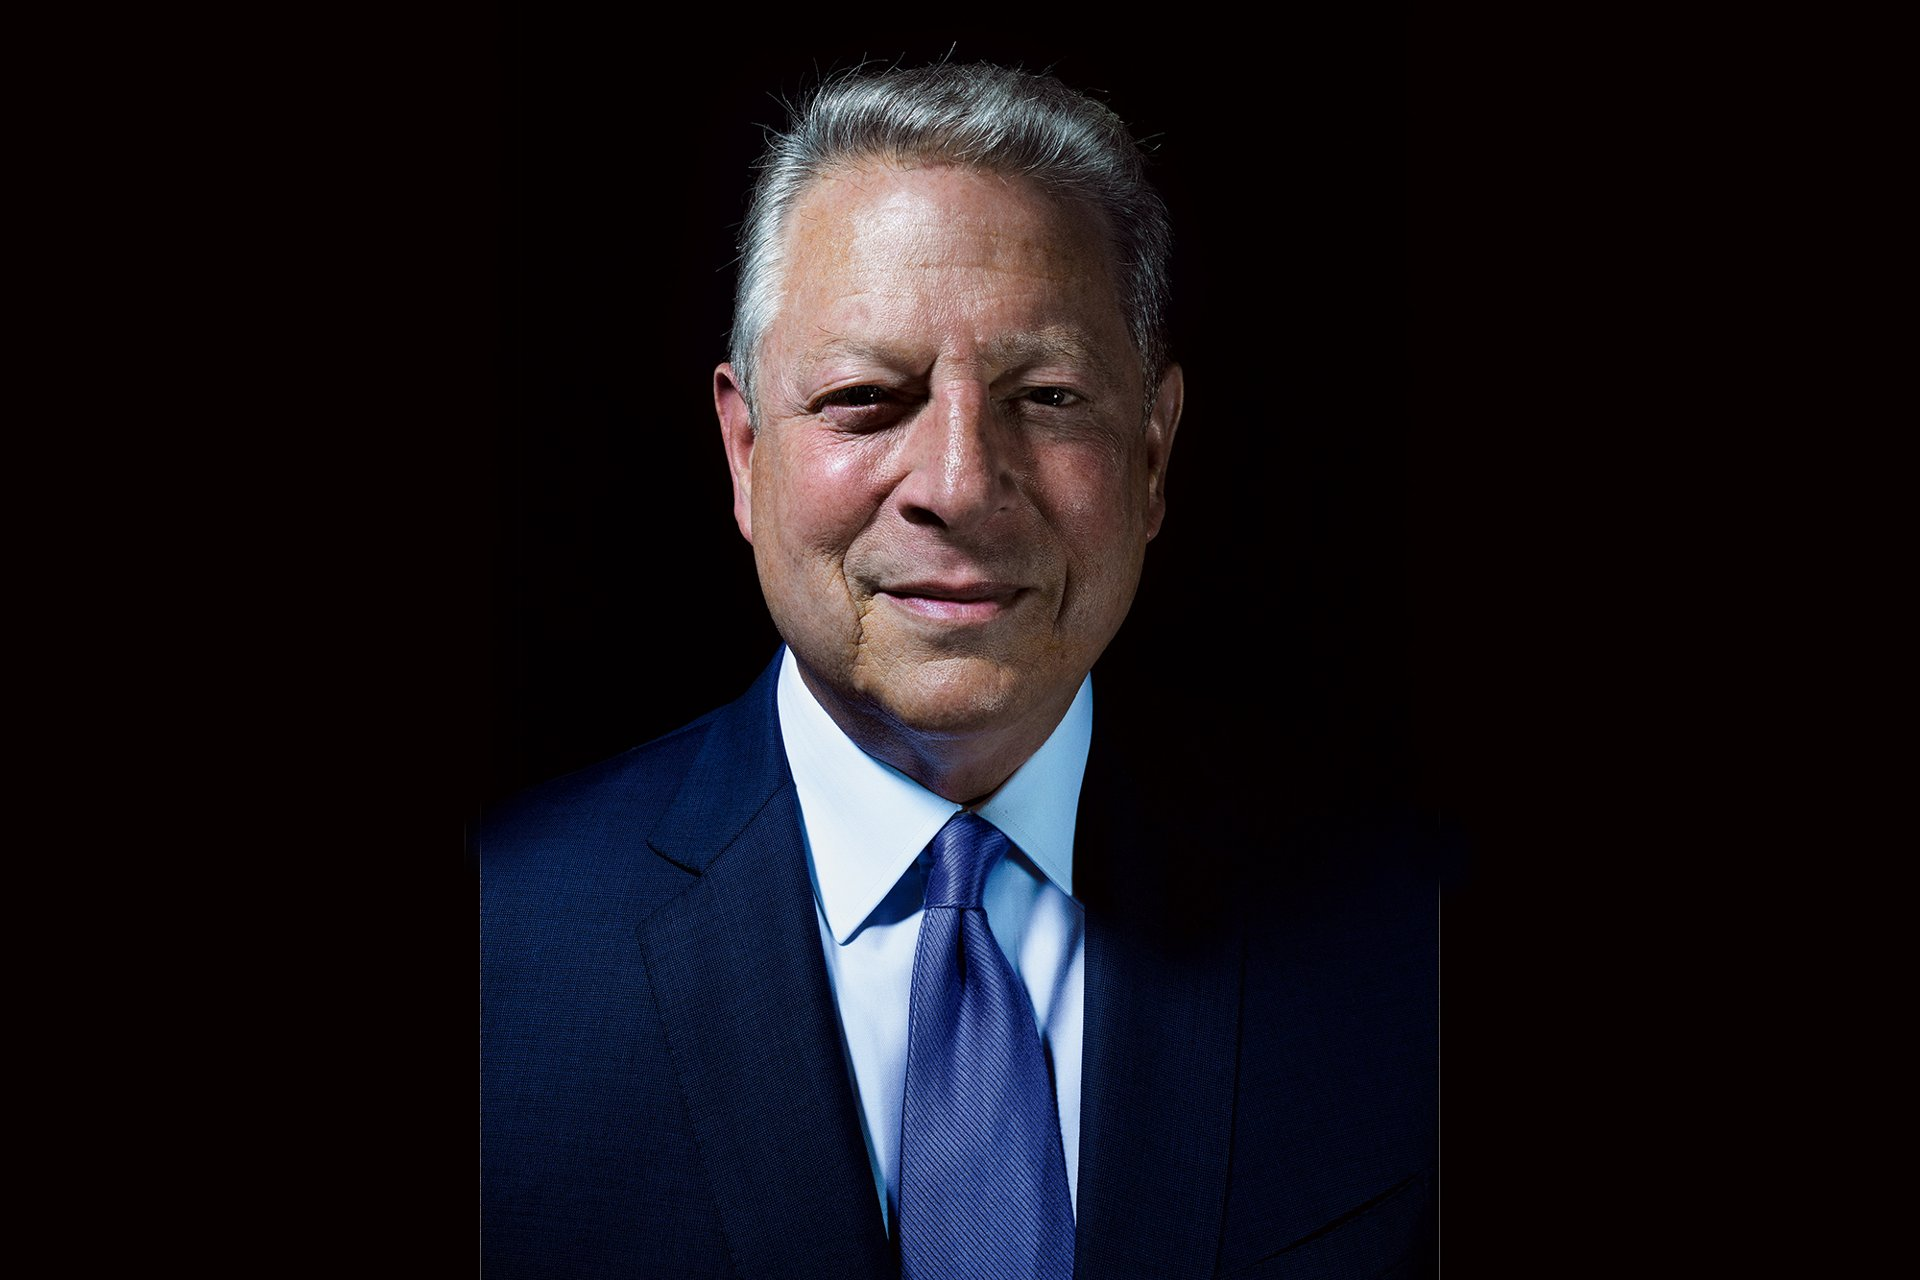 """an analysis of al gore as the next president of america Former us vice-president al gore and veteran investor david blood explain   extreme weather events are now discussed as """"the new normal"""", though   based on our analysis, there are clear indicators we are in the early."""